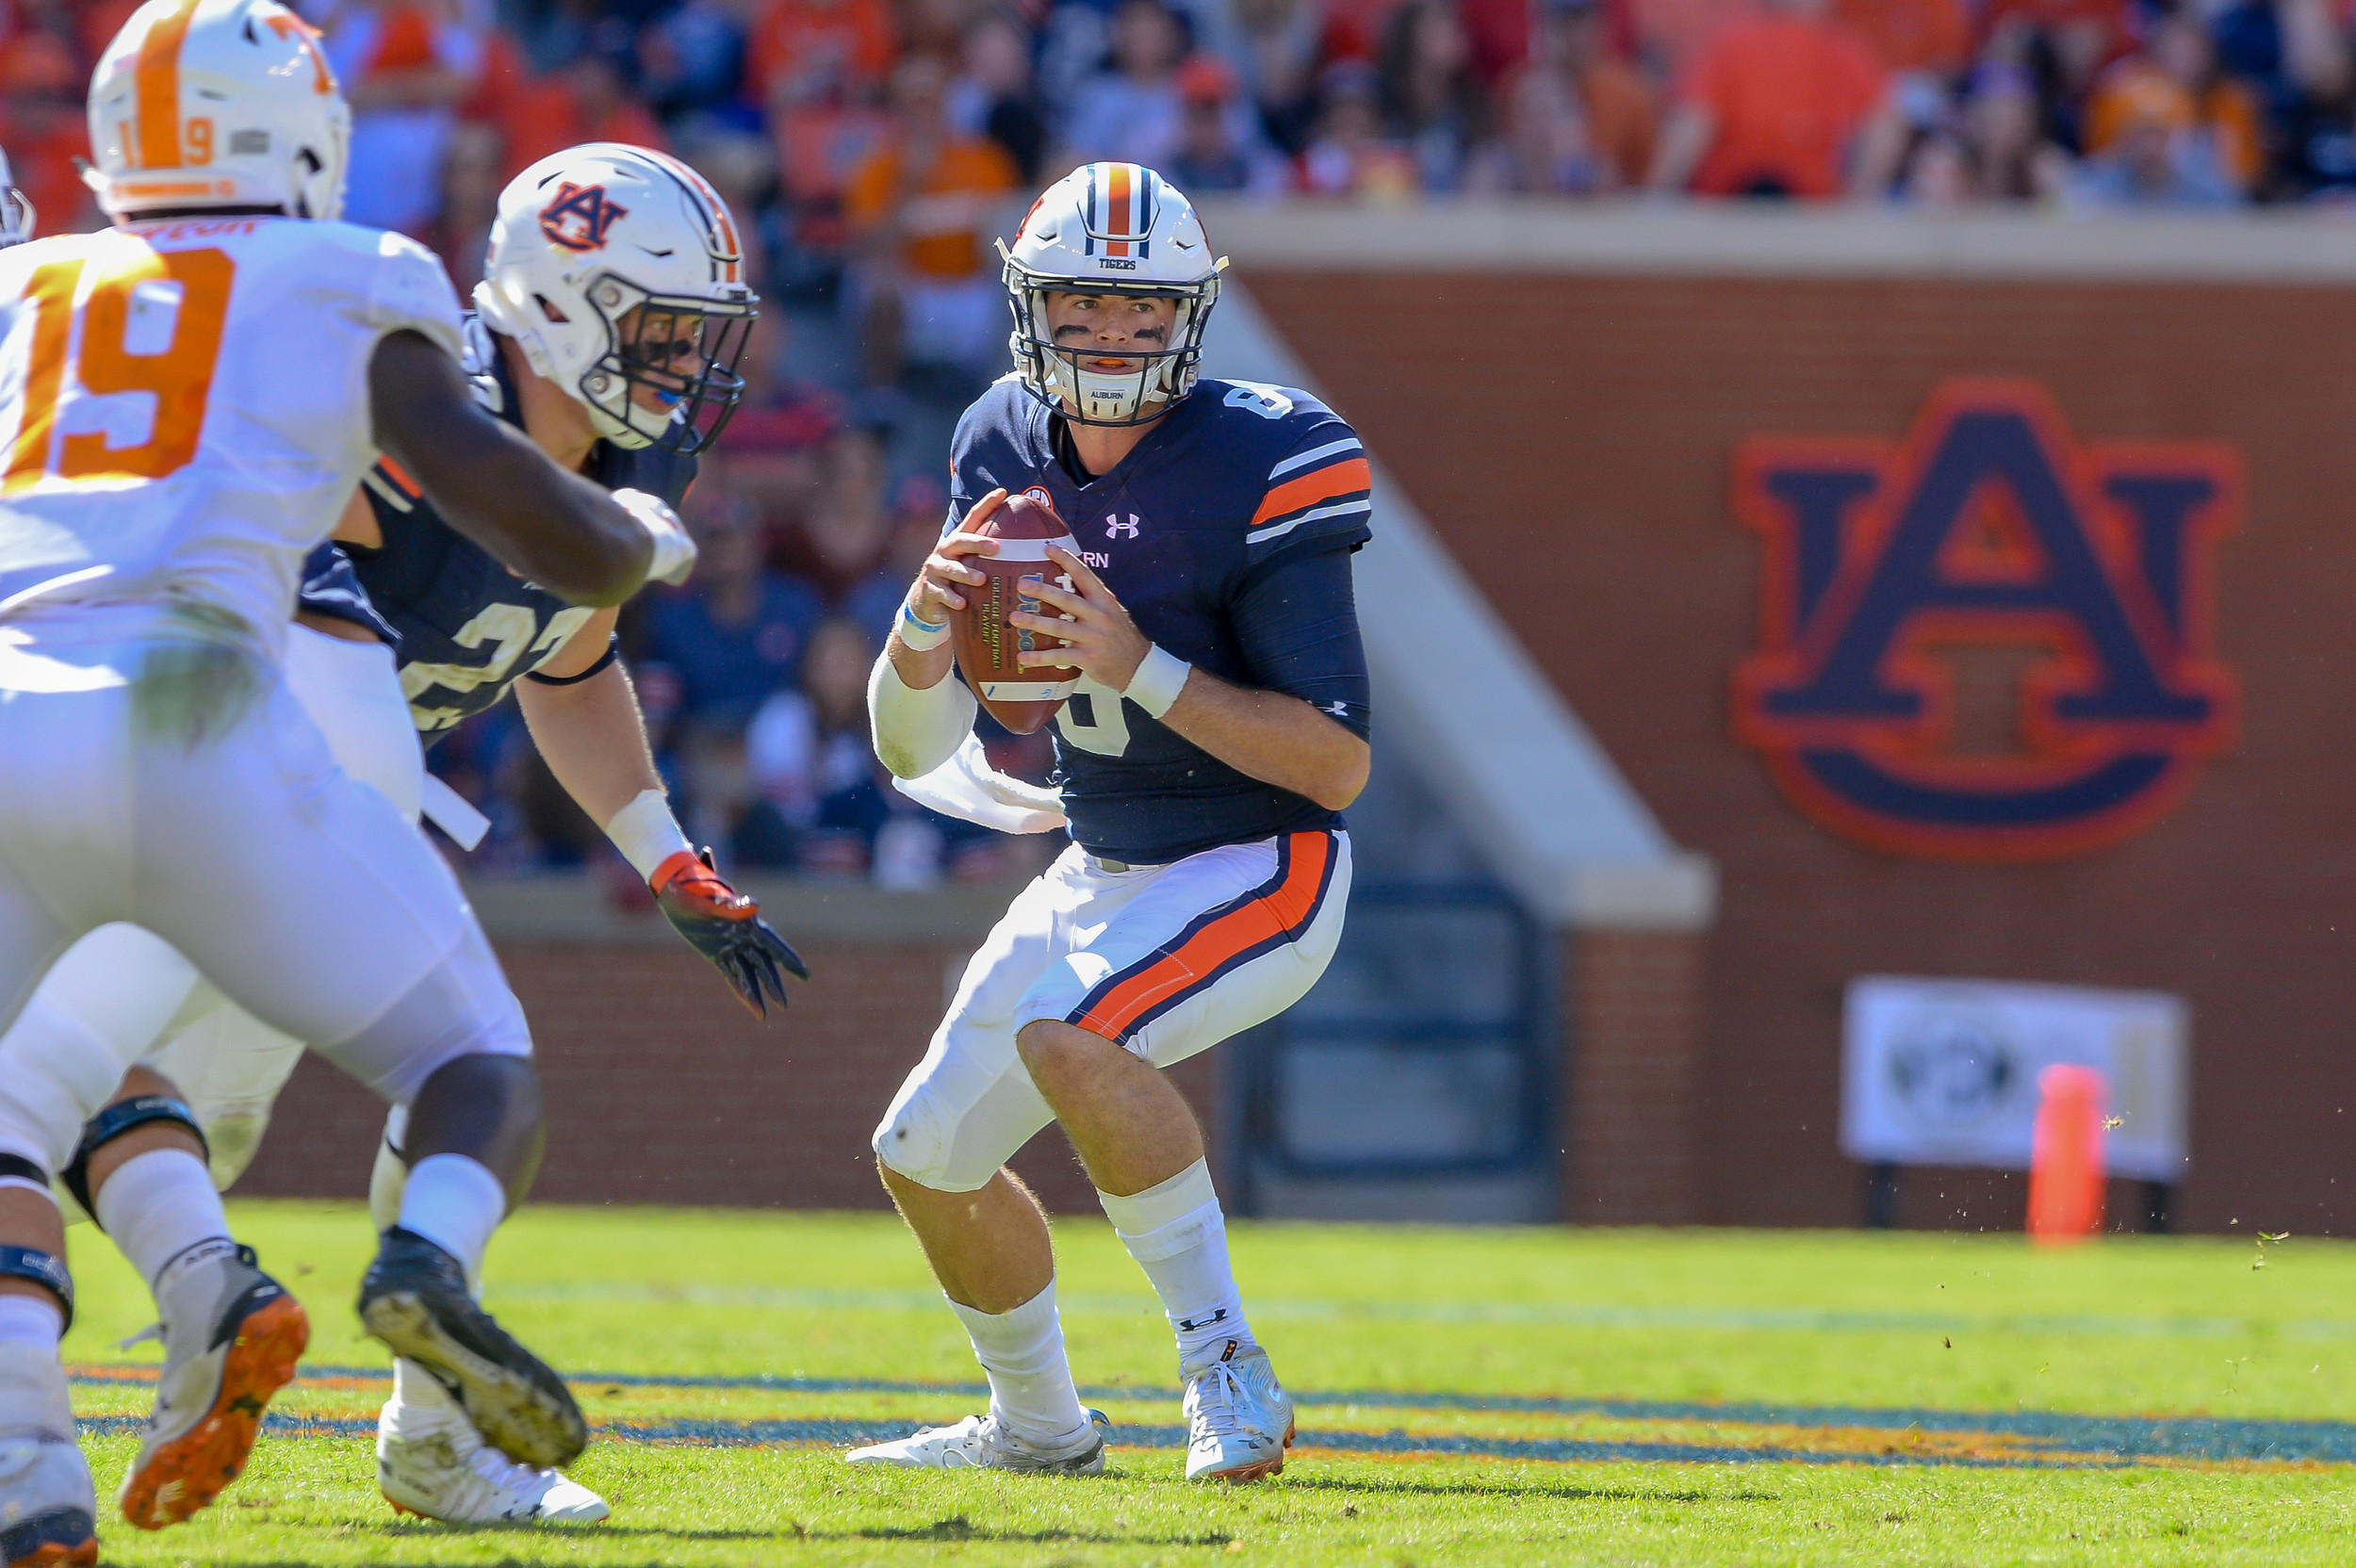 Auburn Tigers quarterback Jarrett Stidham (8) tucks the ball to run during the second half of Saturday's game, at Jordan-Hare Stadium in Auburn, AL. Daily Mountain Eagle -  Jeff Johnsey